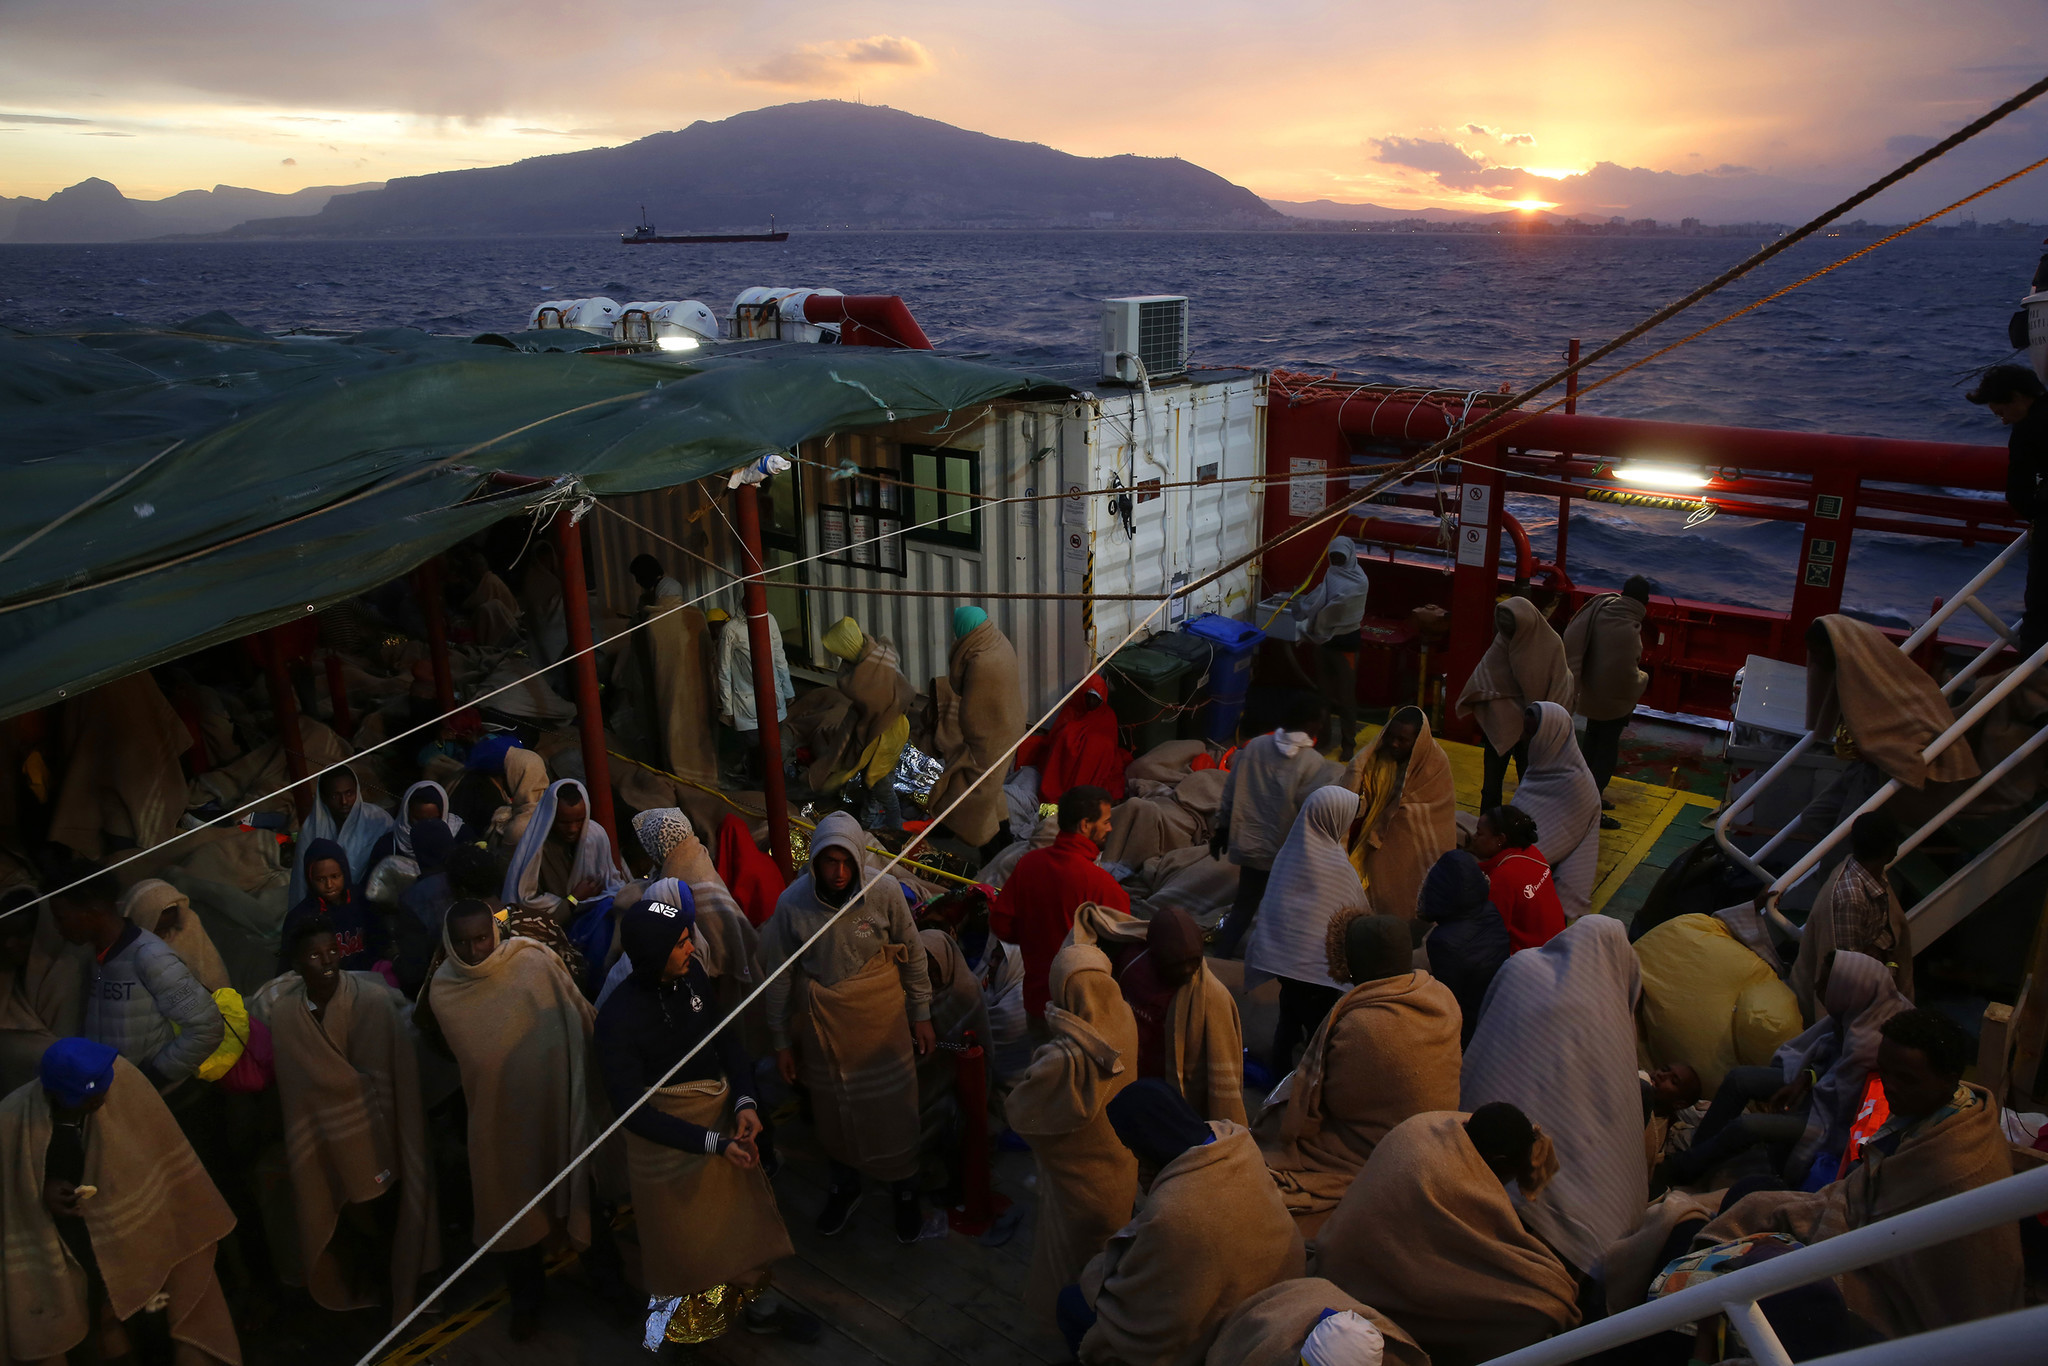 Wrapped in blankets after a night outside on deck, the rescued migrants on the Vos Hestia wait at sunrise off the coast of Sicily.